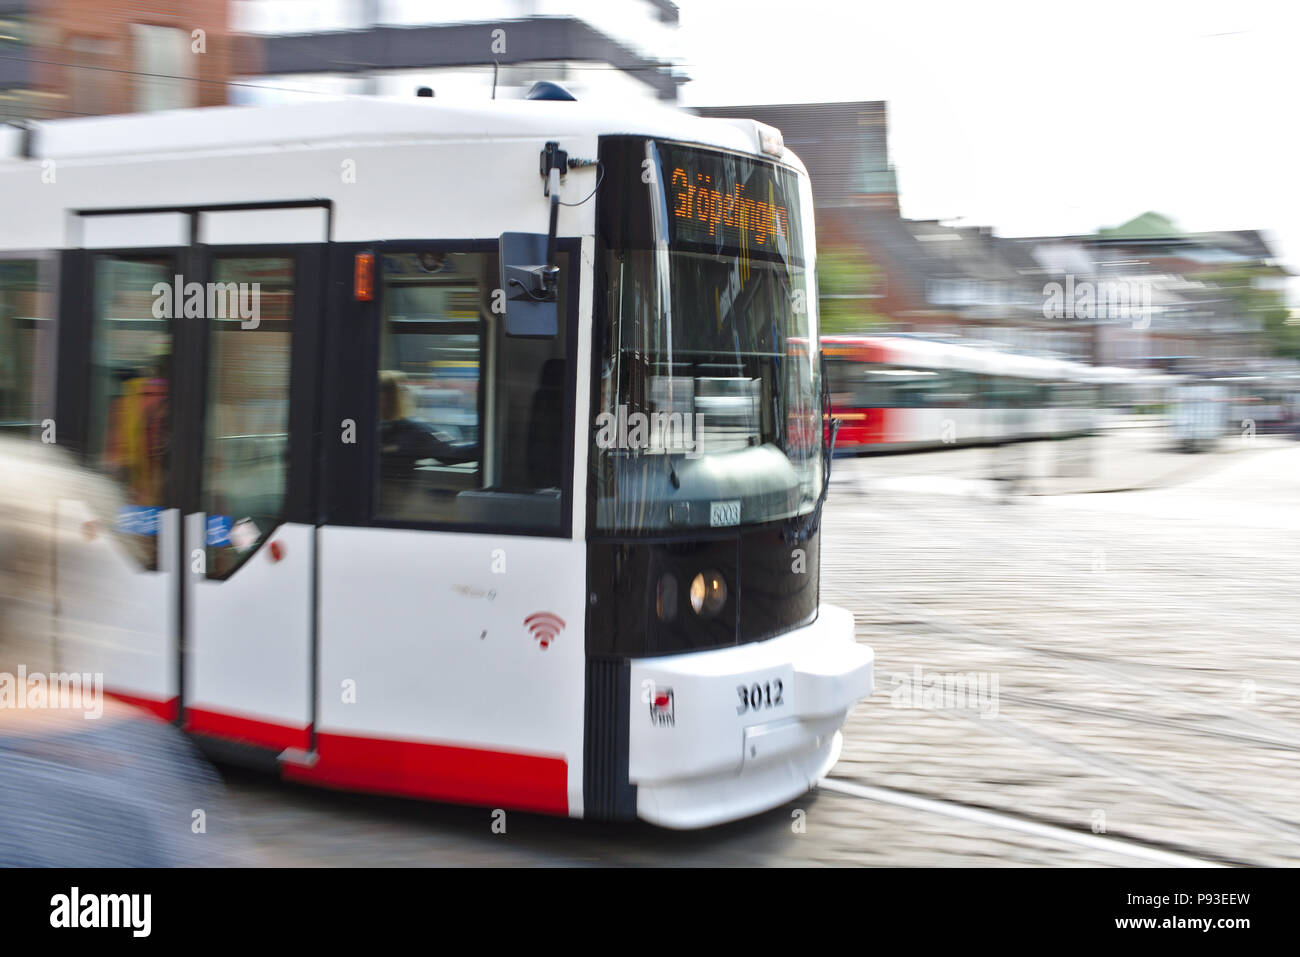 Bremen, Germany - July 10th, 2018 - First car of a tram passing by (motion blur, long exposure) - Stock Image